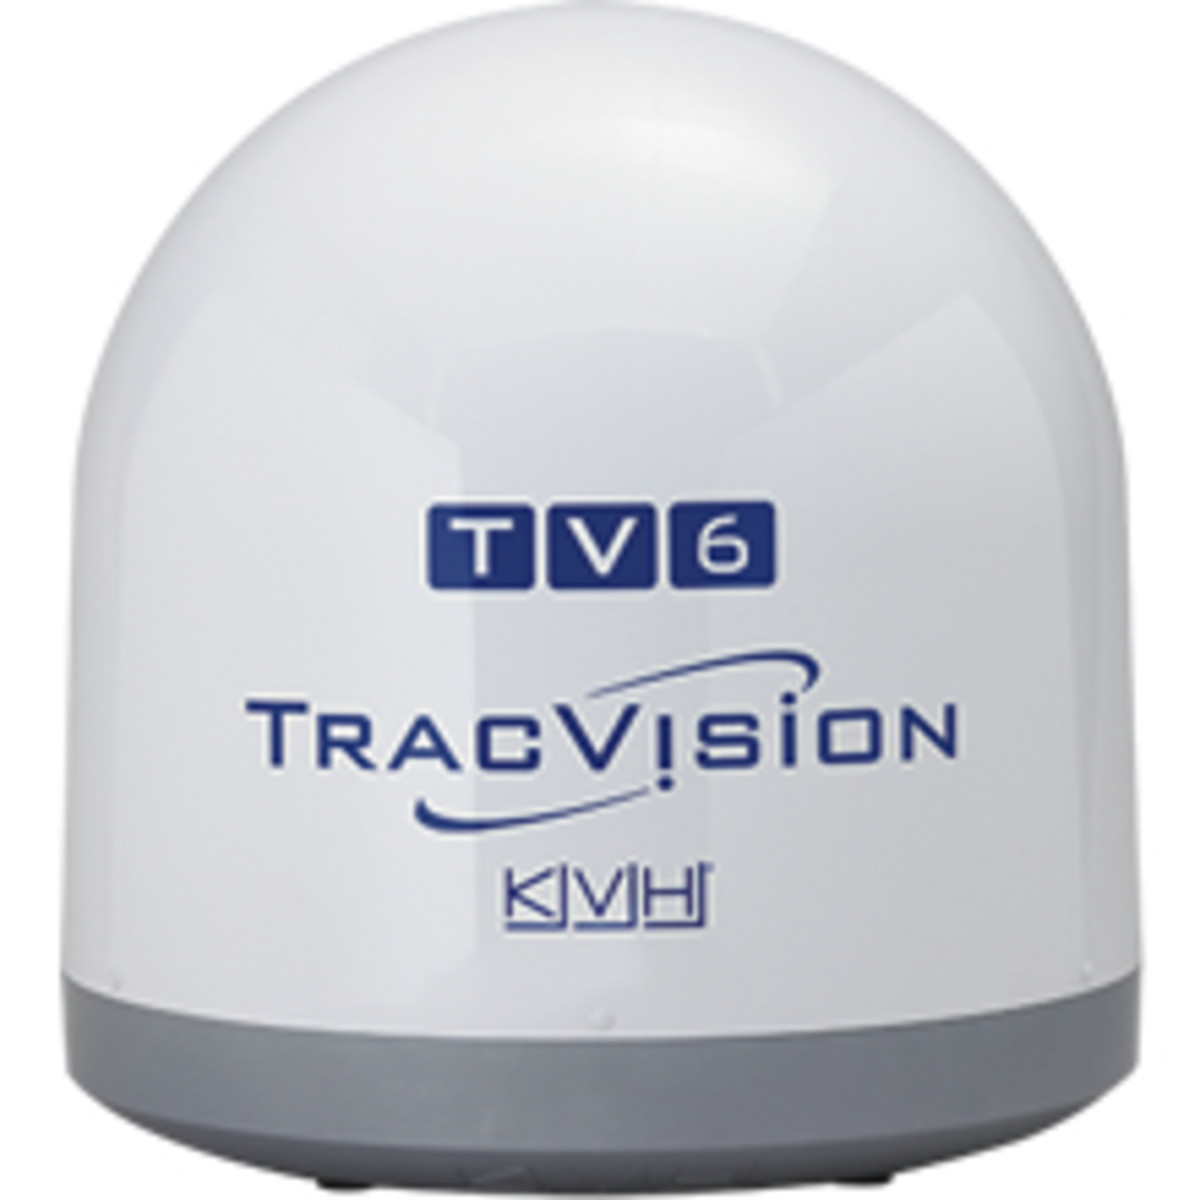 KVH GTV6 is designed for offshore yachts.